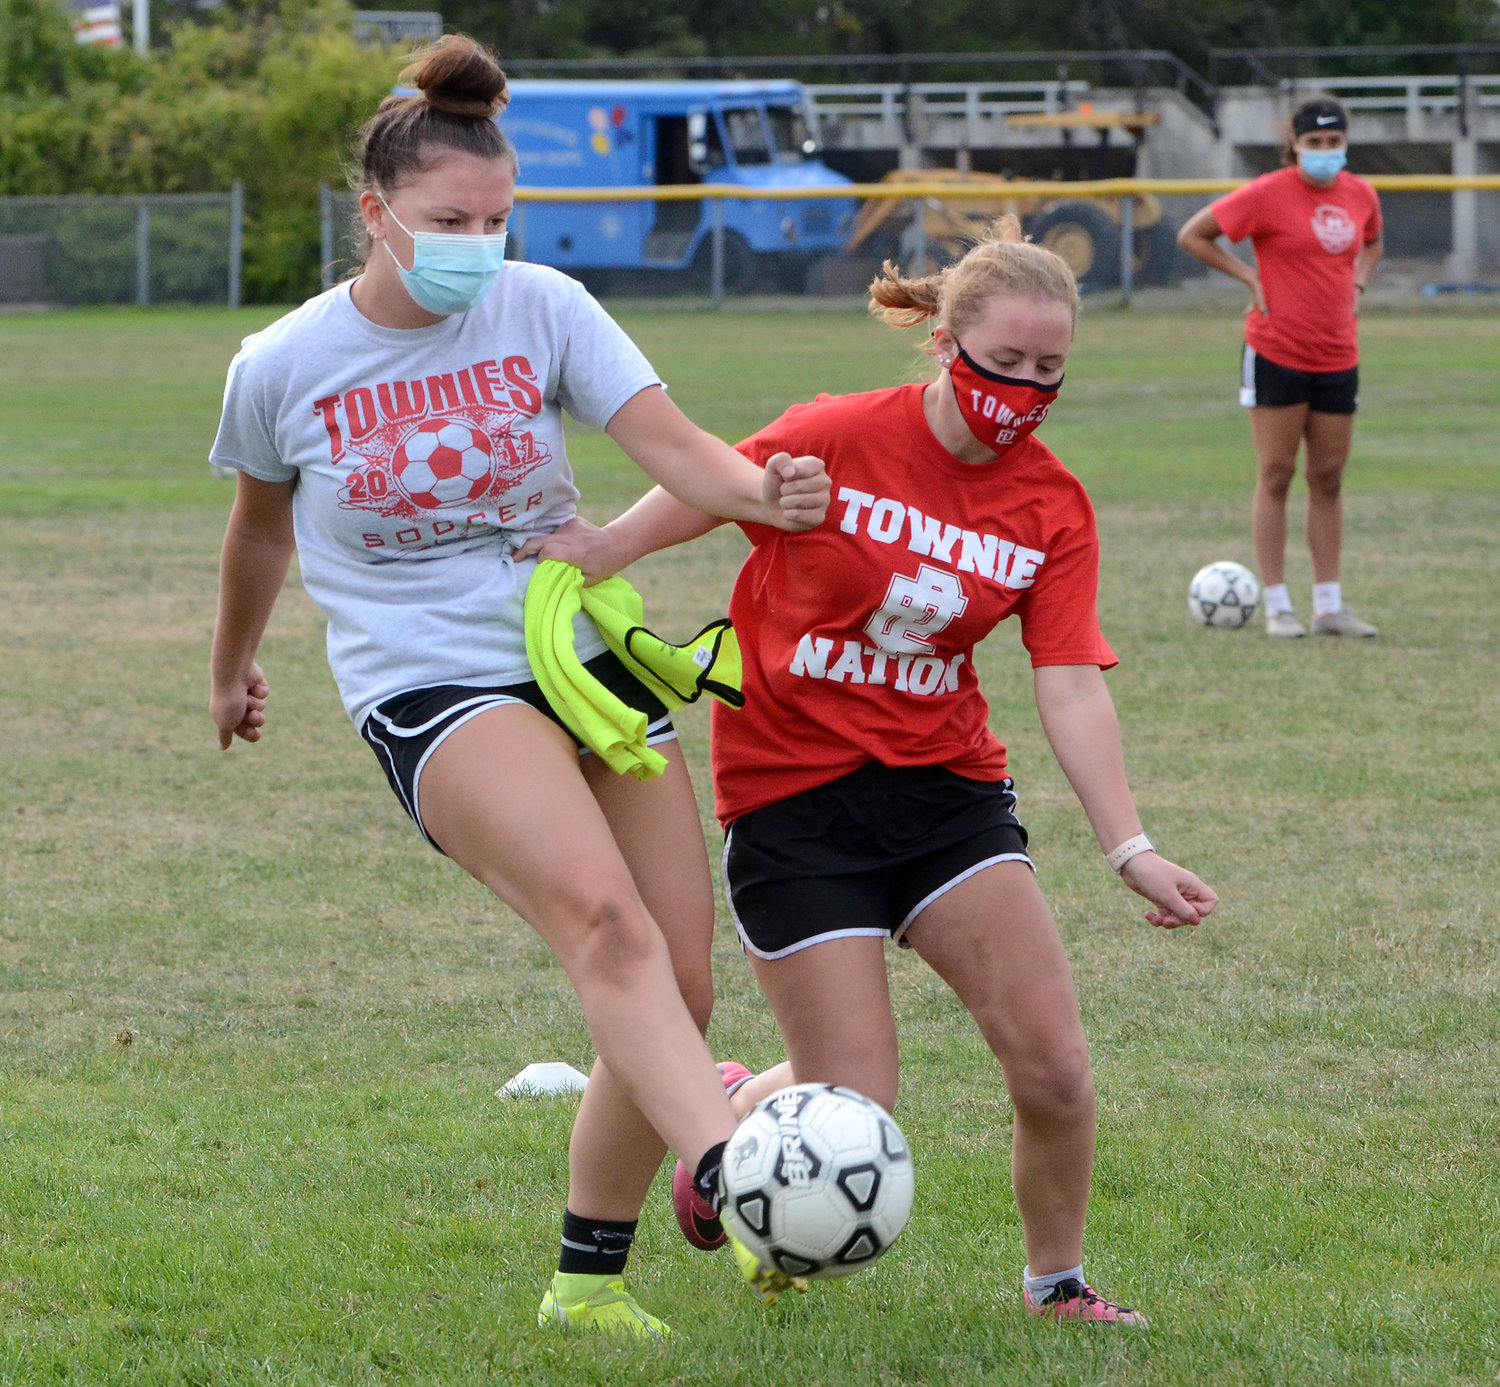 Townies Julia Rocha and Kayla Hannon tussle for control of the ball during a recent EPHS girls' soccer team practice.